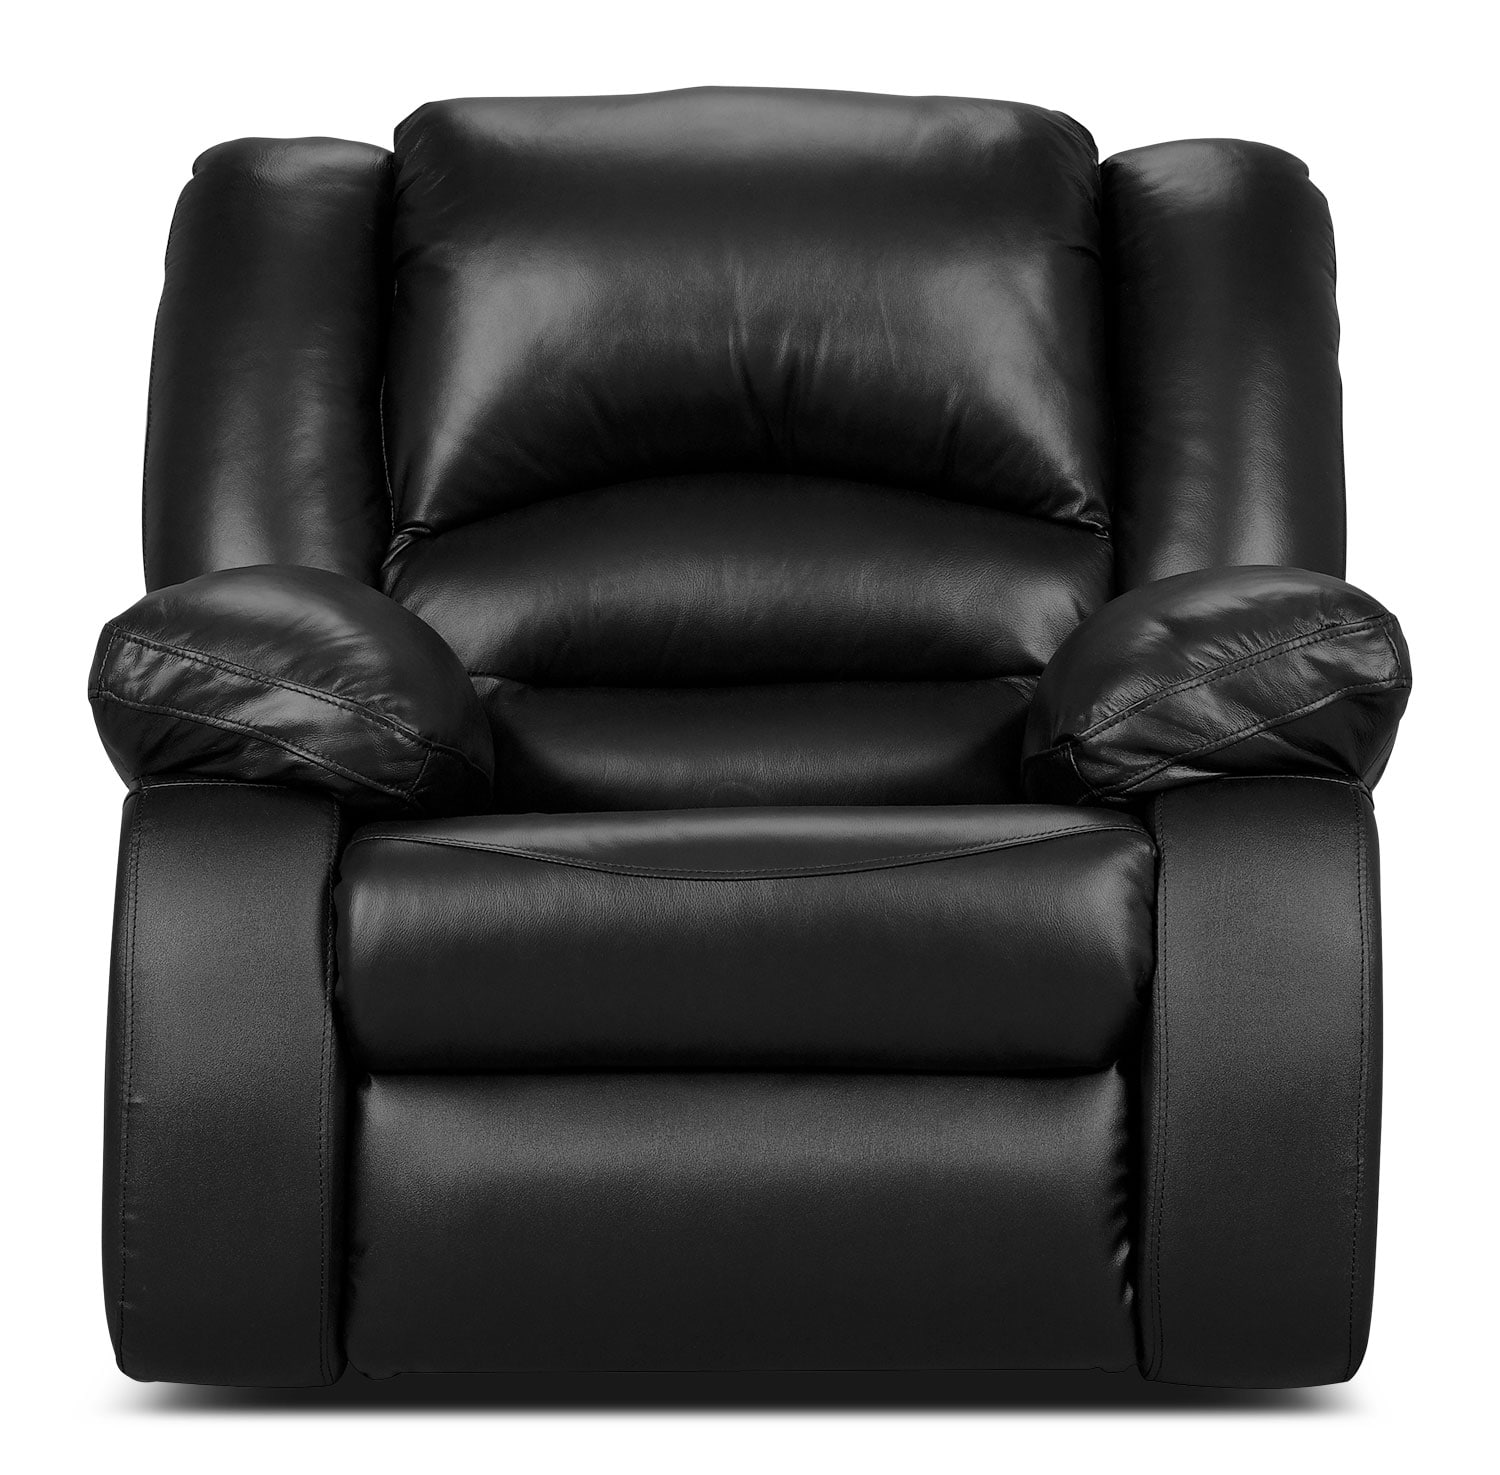 Toreno Genuine Leather Power Reclining Chair – Black